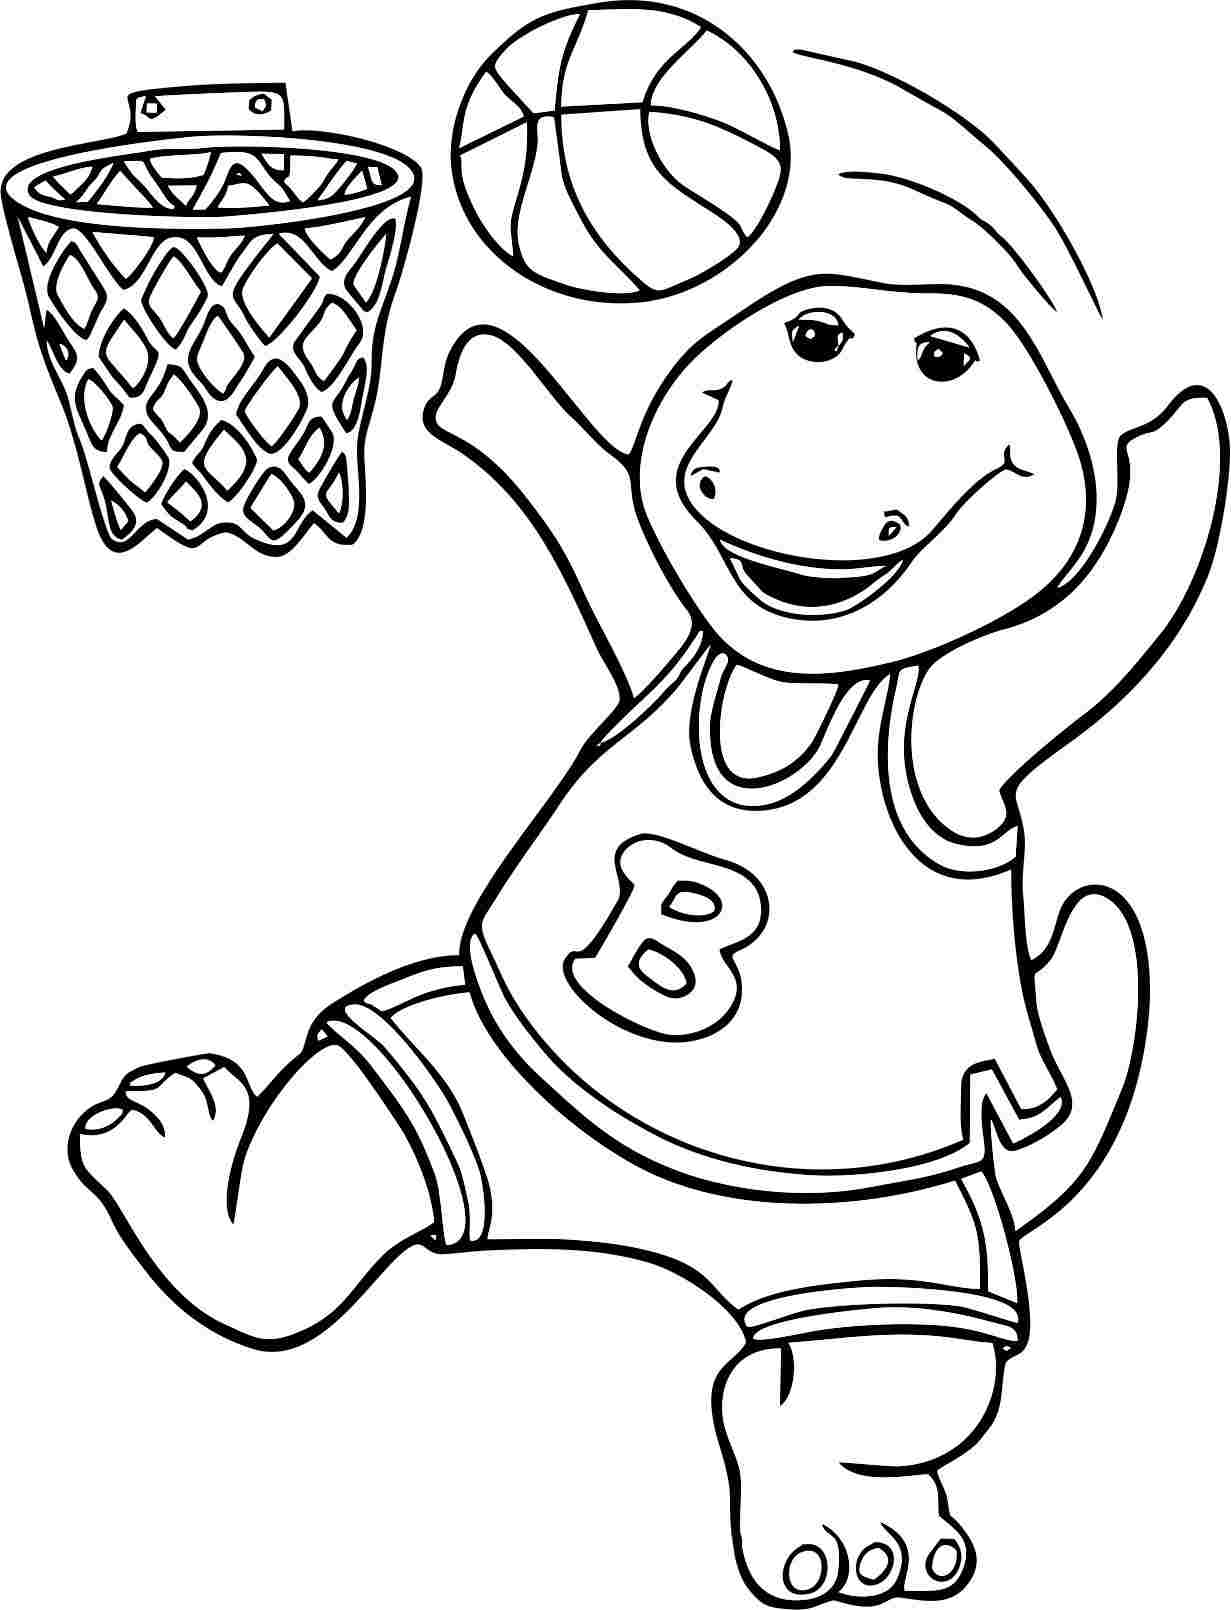 free coloring pages that are printable | Story of a friendly dinosaur Barney 20 Barney coloring ...